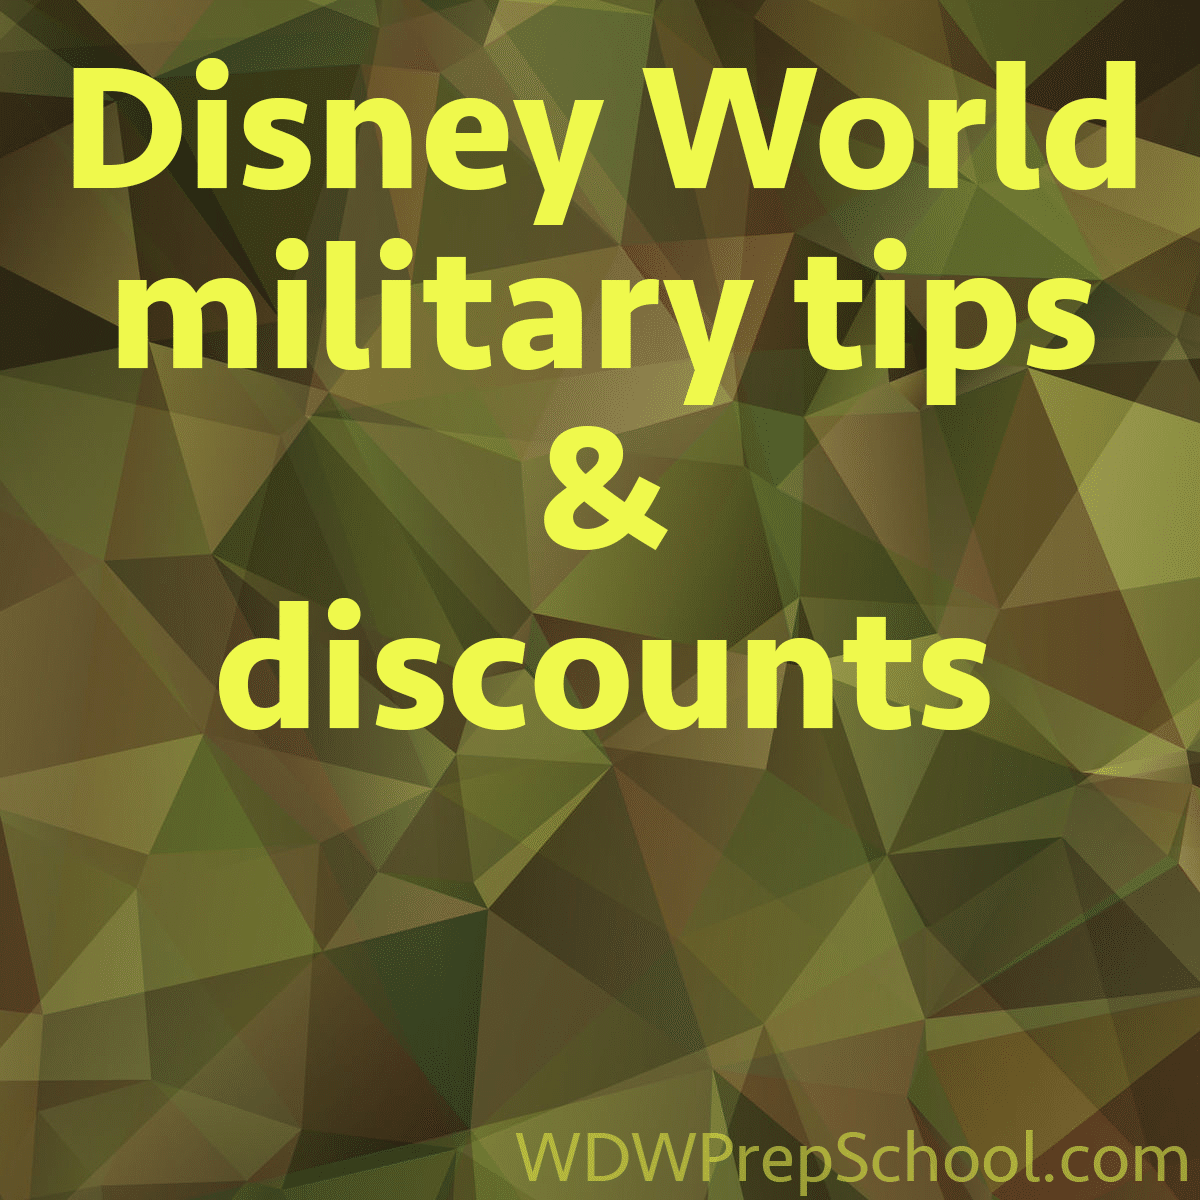 Make your stay more magical with special offers throughout the 4 unique theme parks and resort hotels at Walt Disney World. Special Offers for Military Personnel Disney salutes active and retired U.S. military with special offers at Disney Parks & Destinations.